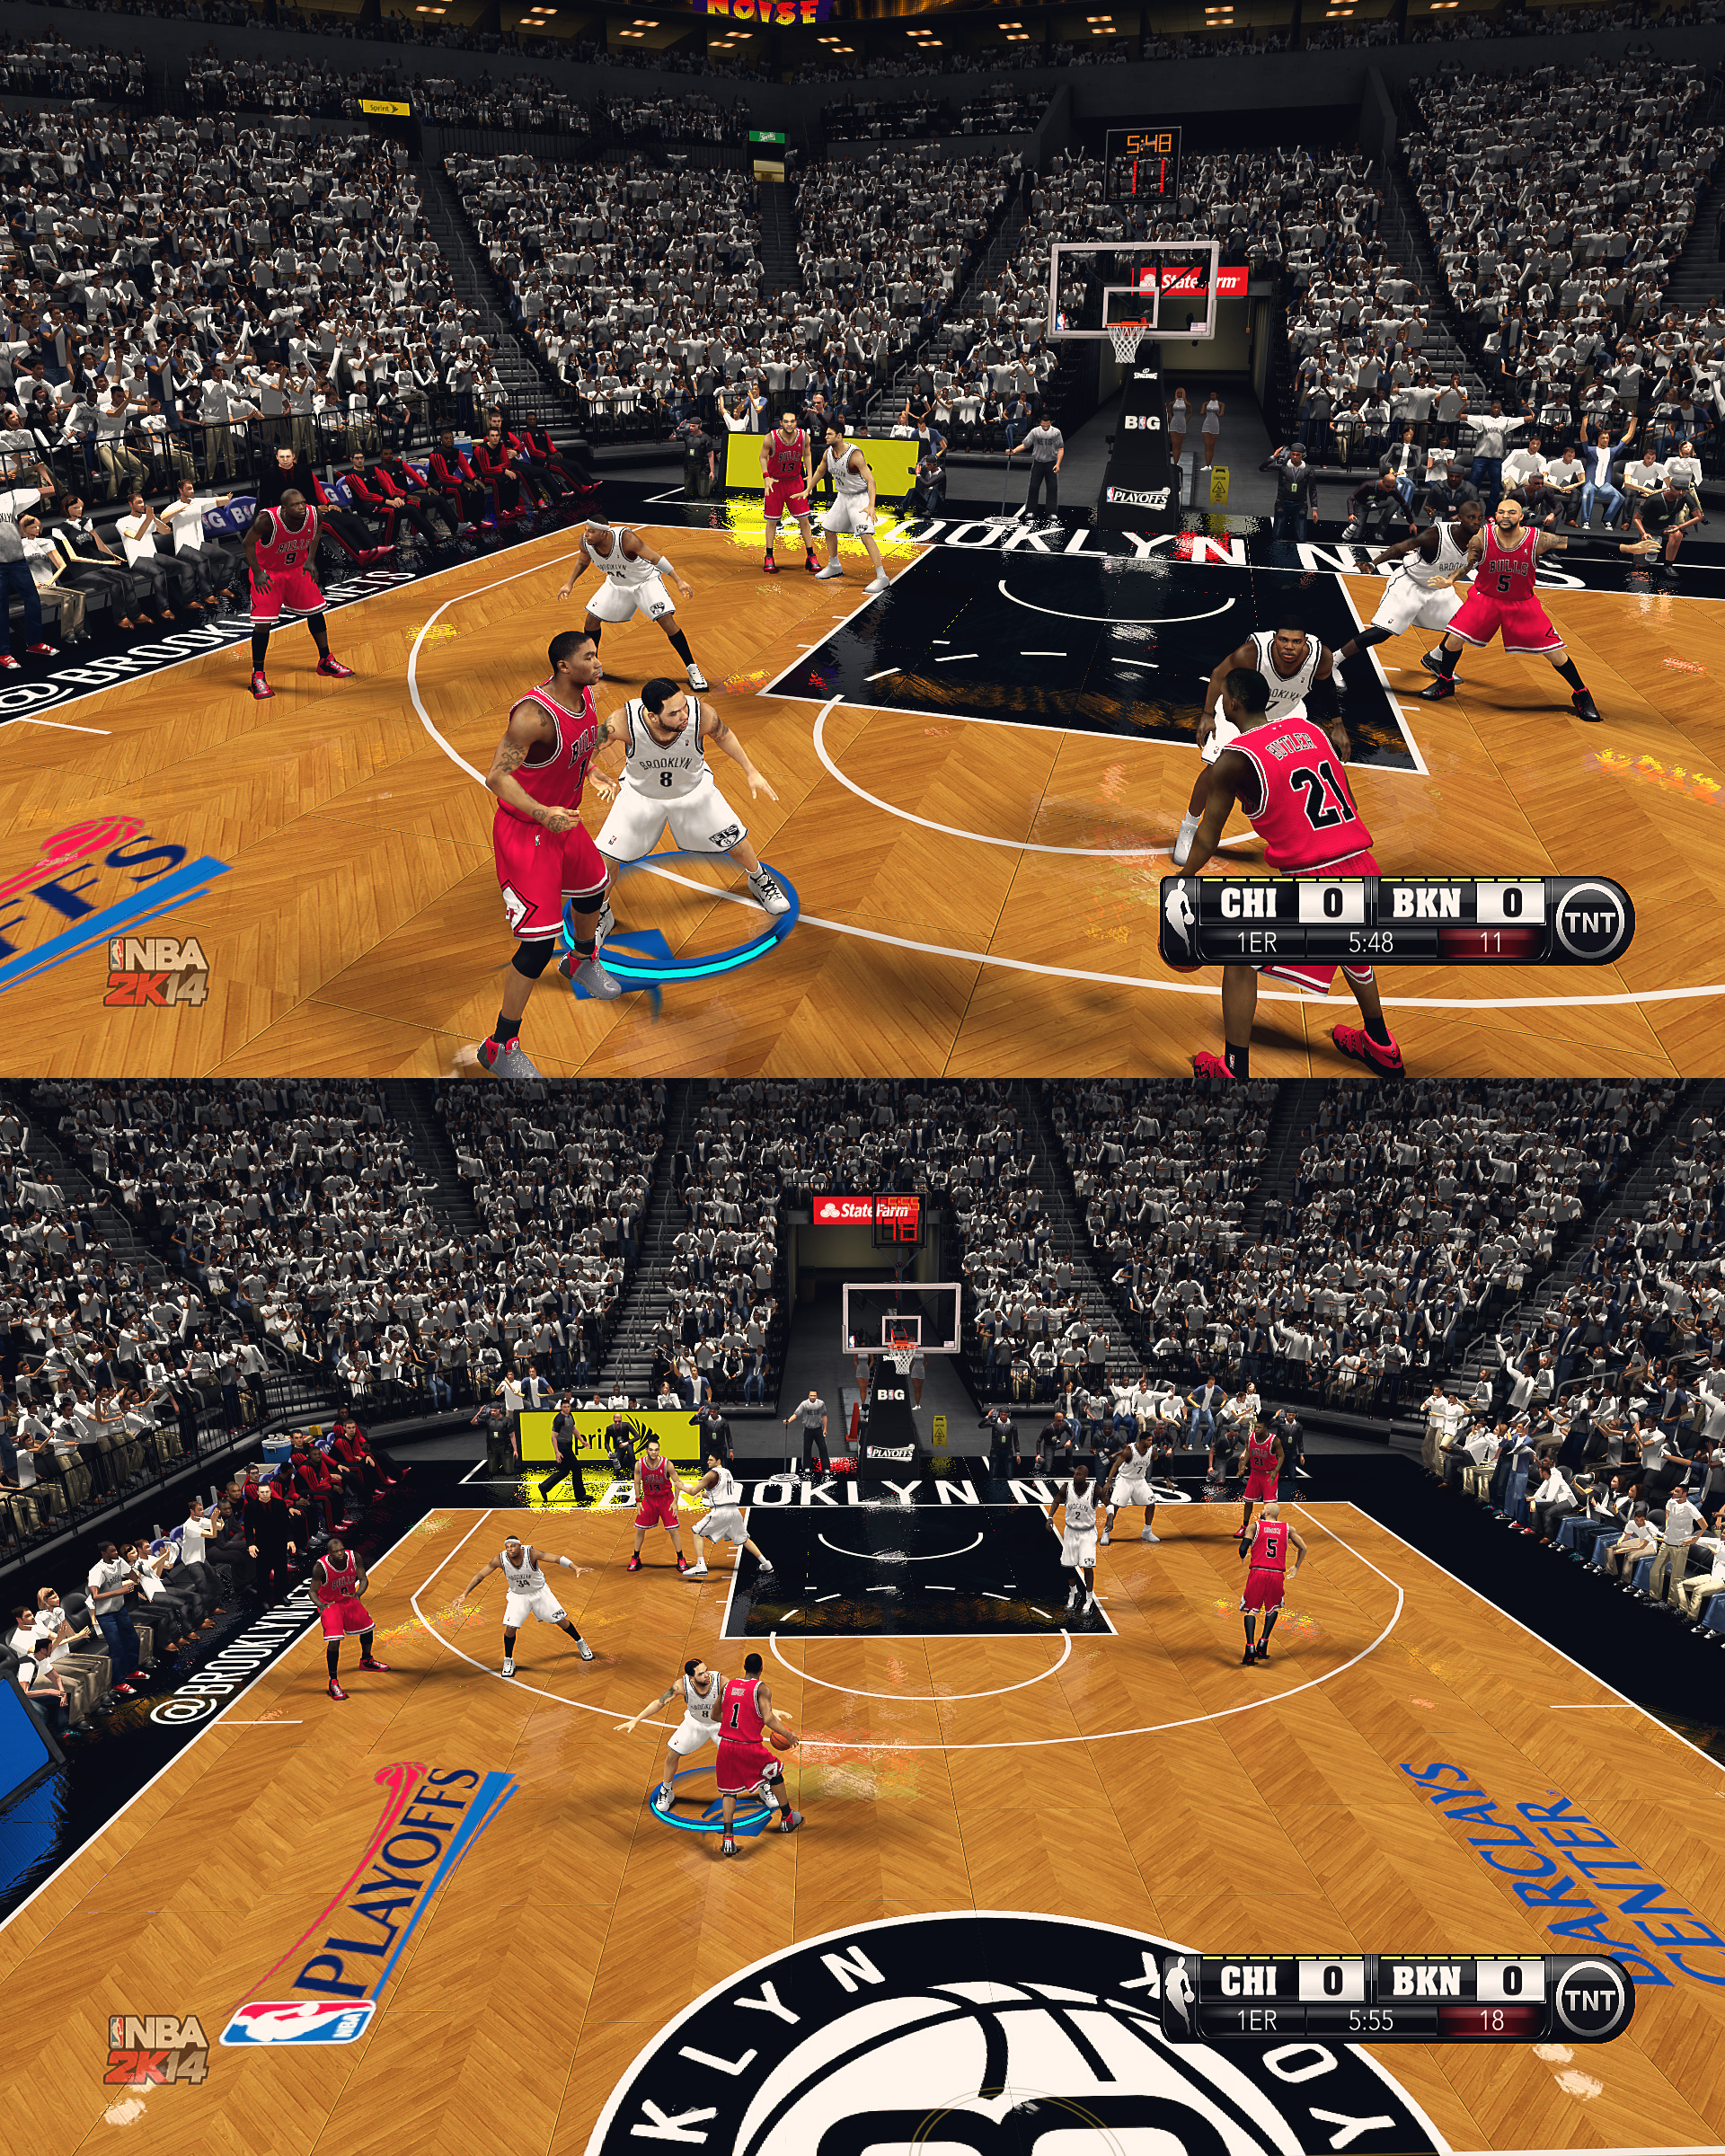 Brooklyn Nets HD Court by stoeck